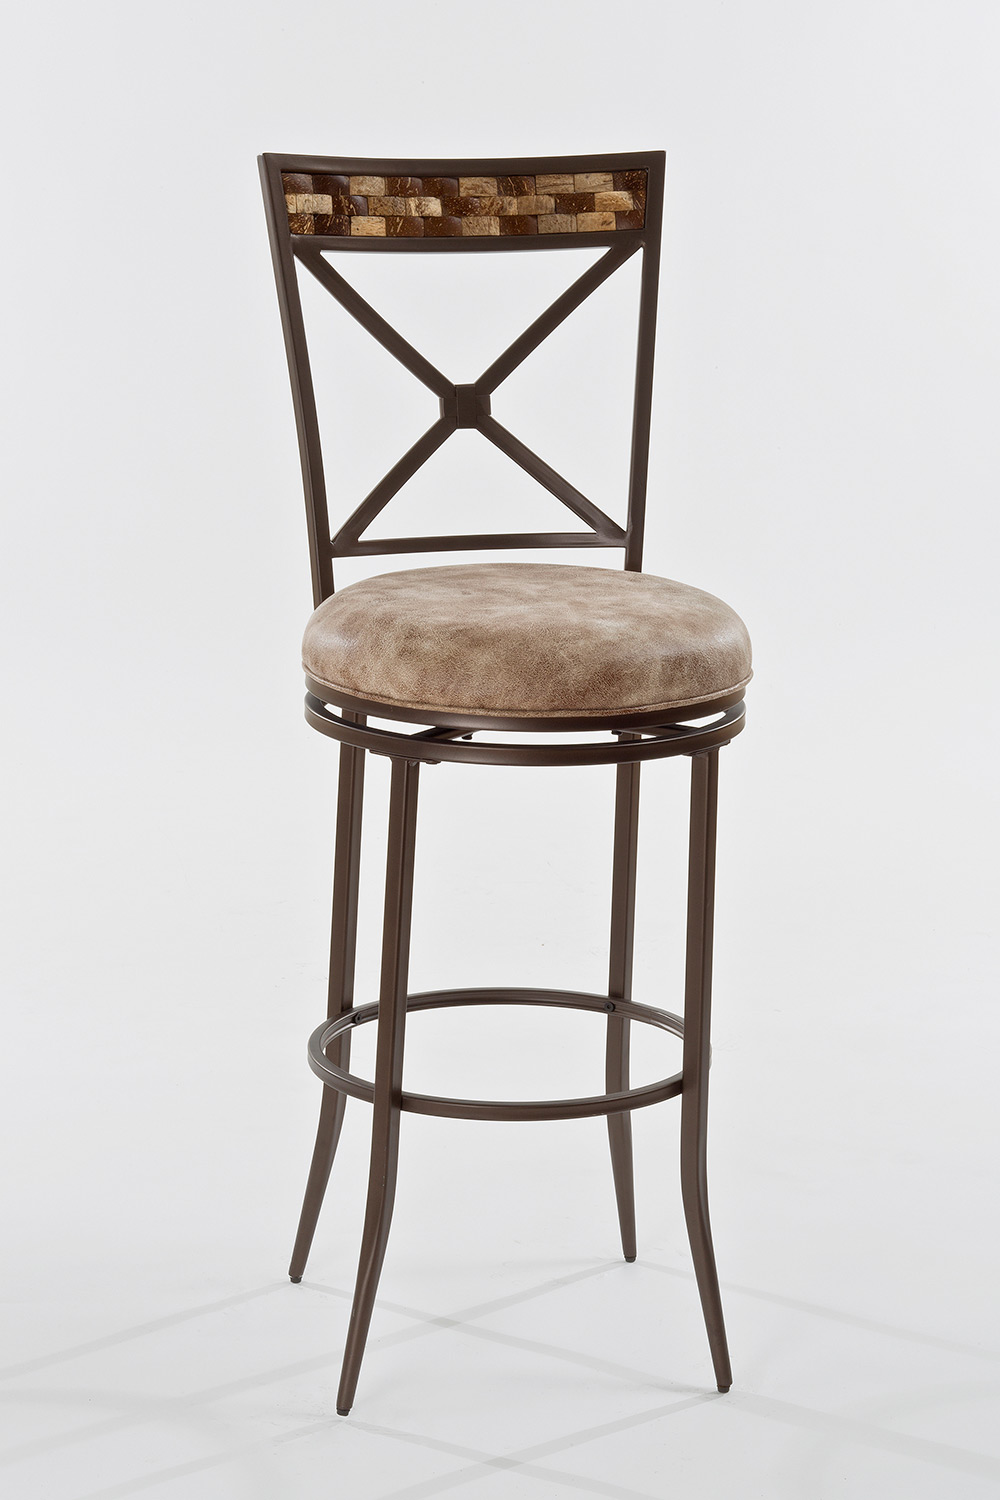 Hillsdale Compton Swivel Counter Stool - Brown - Weathered Beige Leatherette